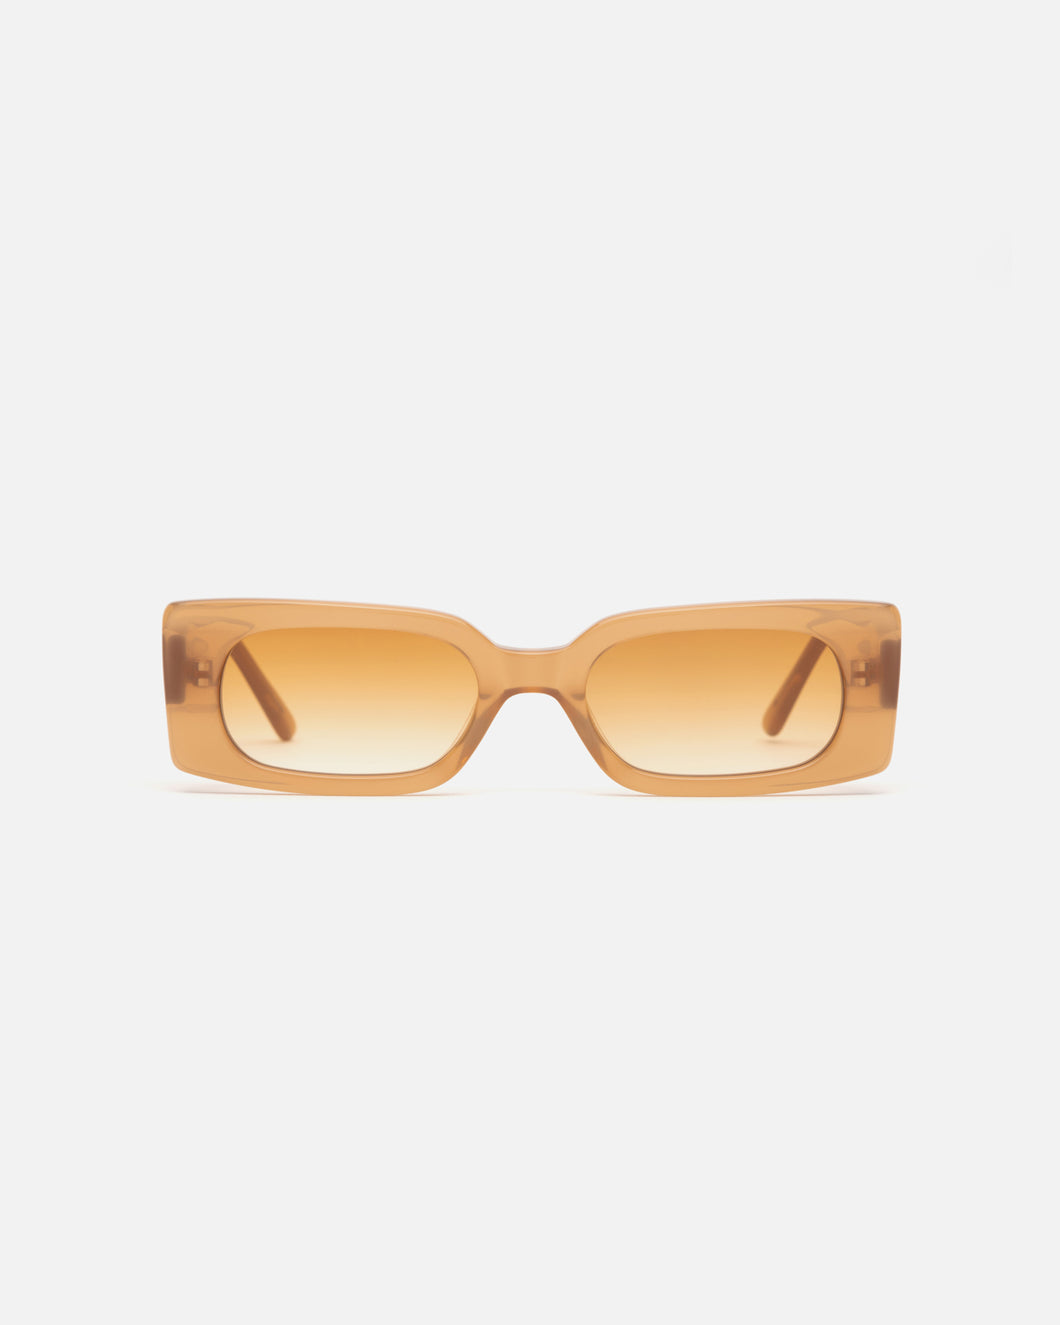 Lu Goldie Salome rectangle Sunglasses in caramel beige acetate with gradient brown lenses, front